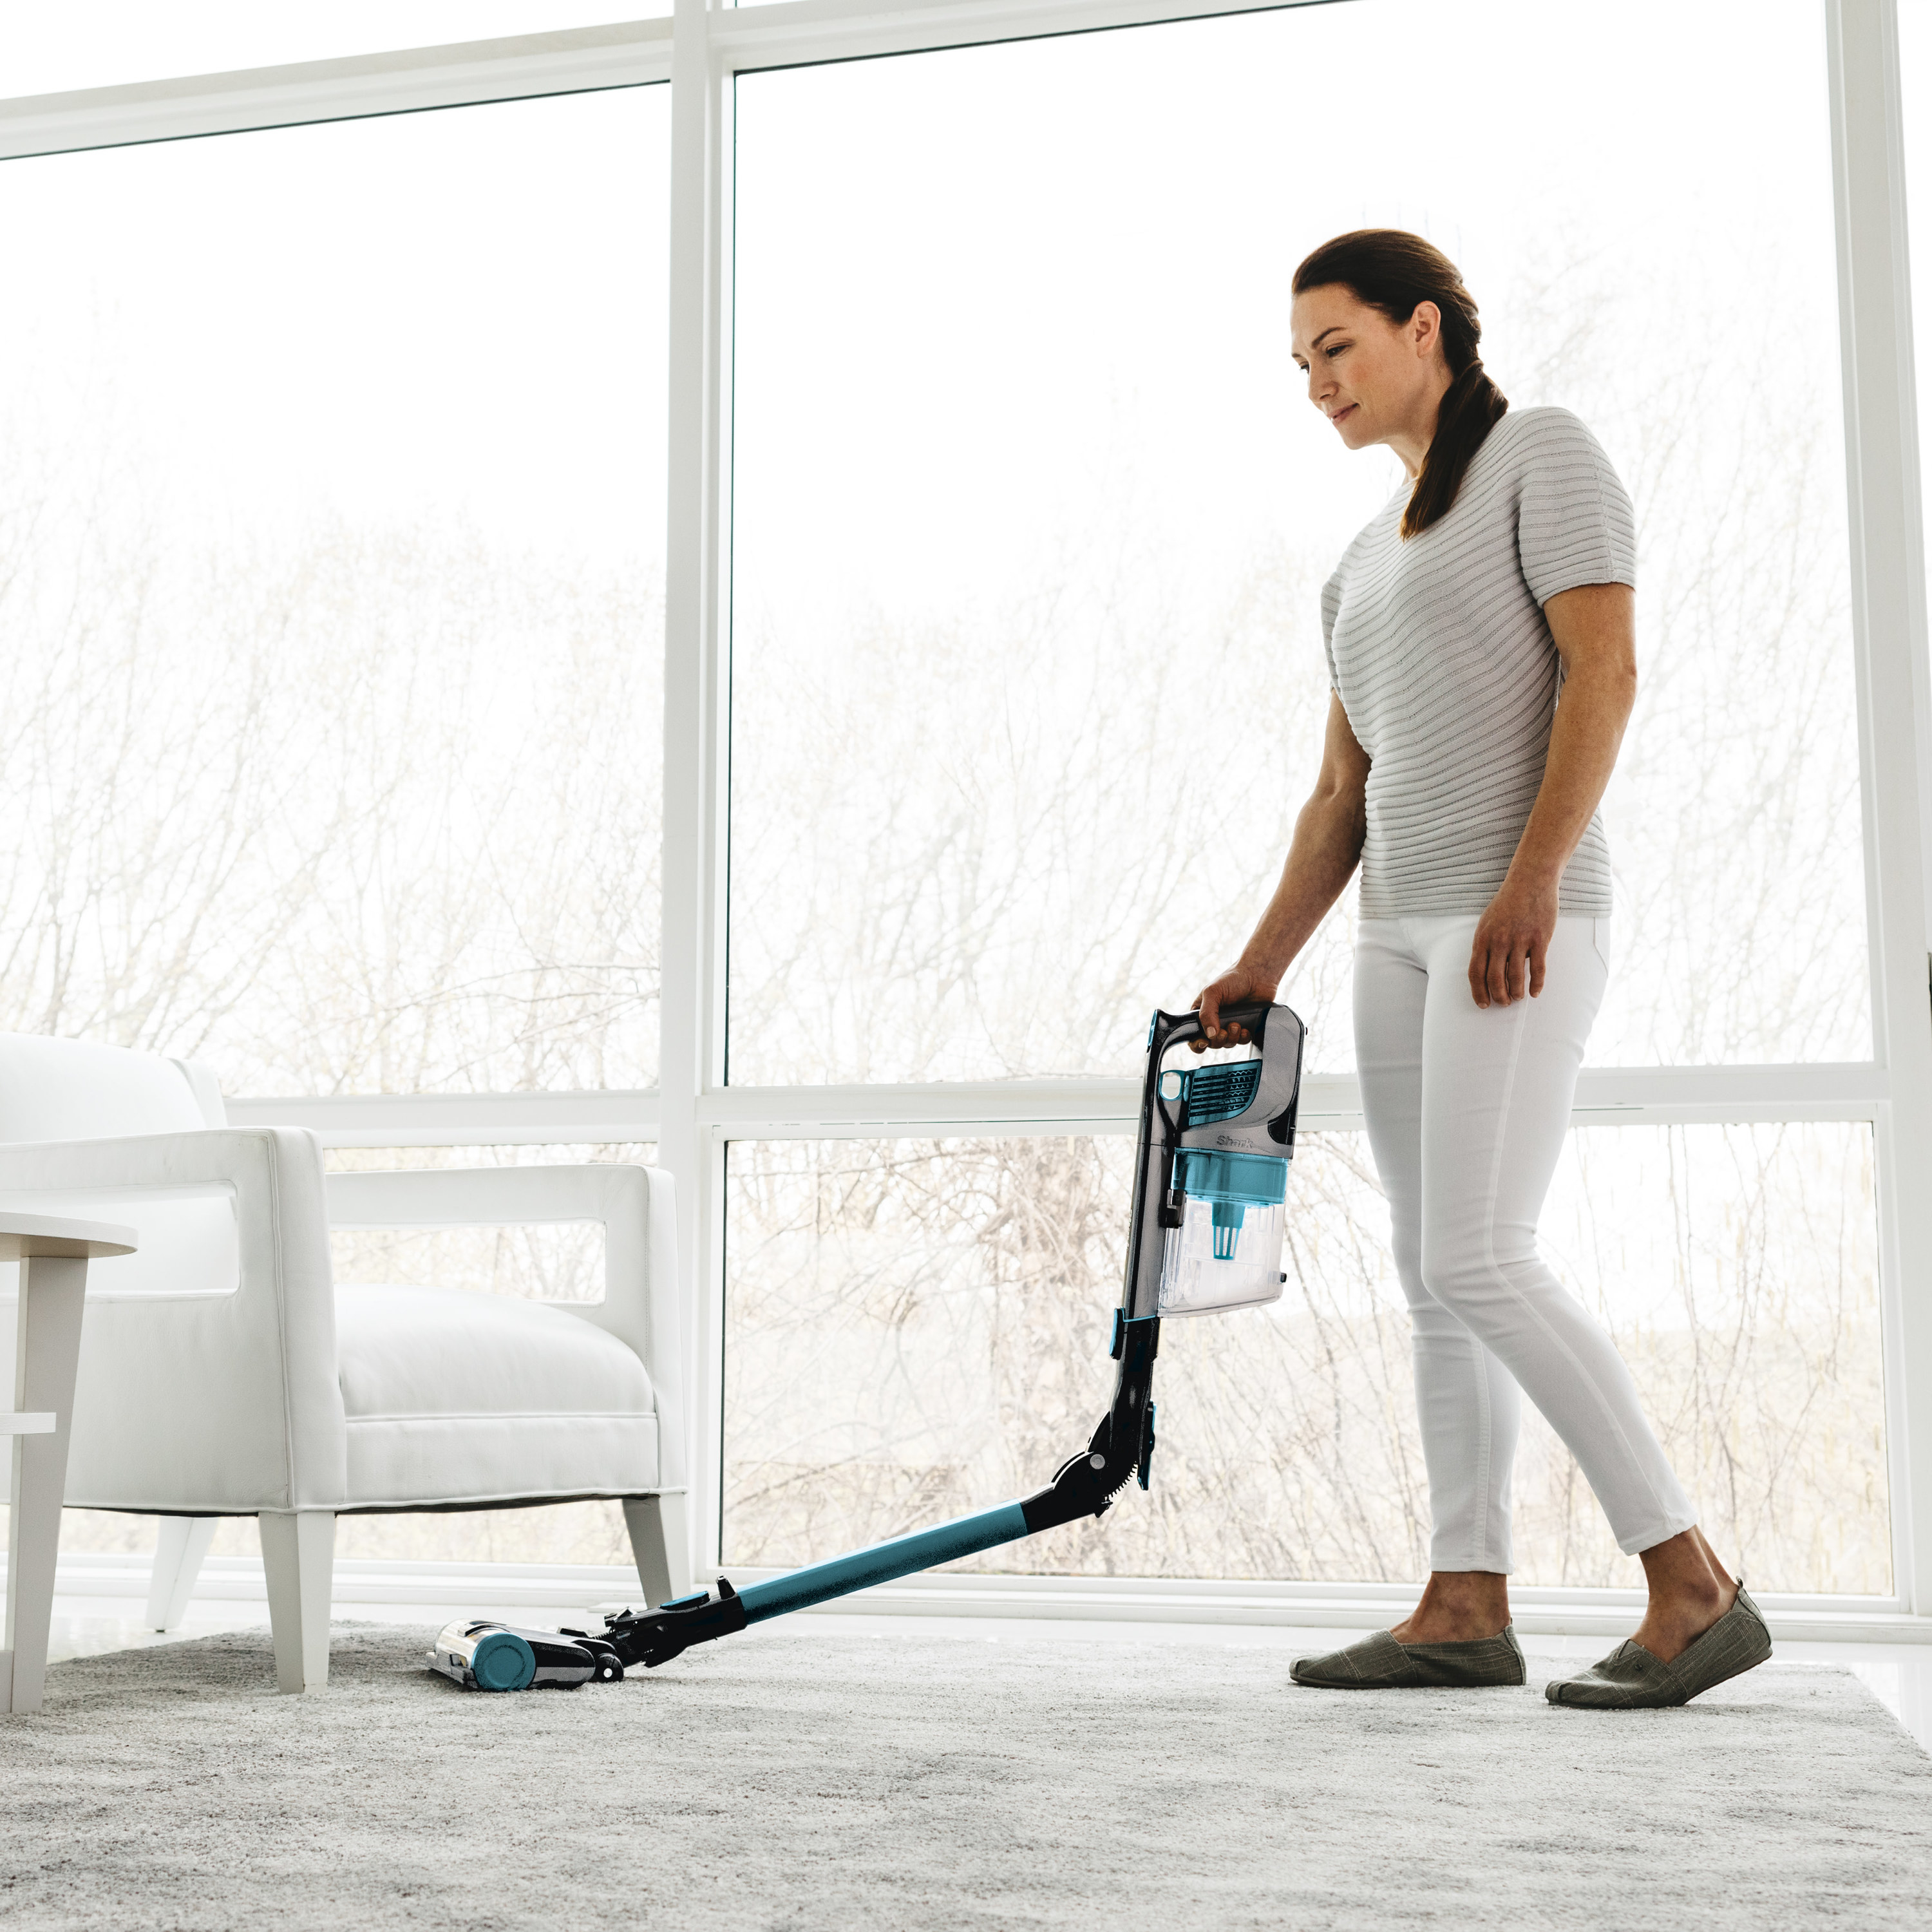 A model using the vacuum in a living room